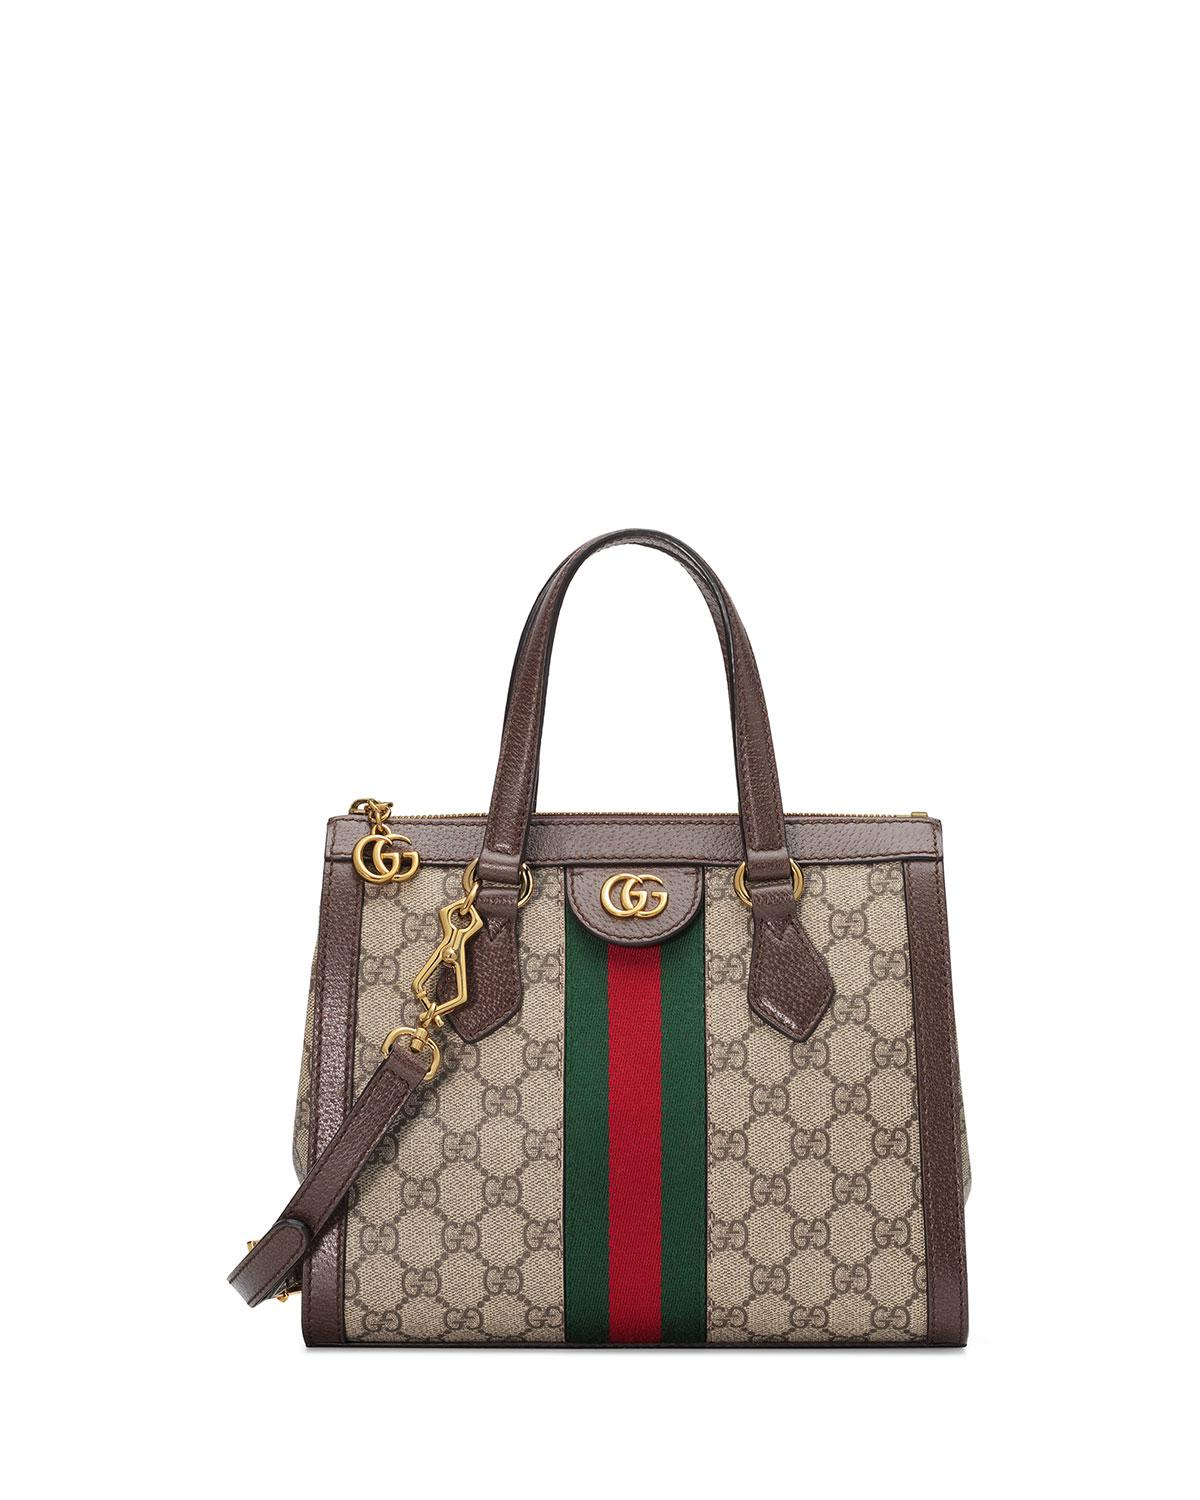 1775075d22f Gucci Ophidia Small GG Tote Bag in Natural - Save 17% - Lyst